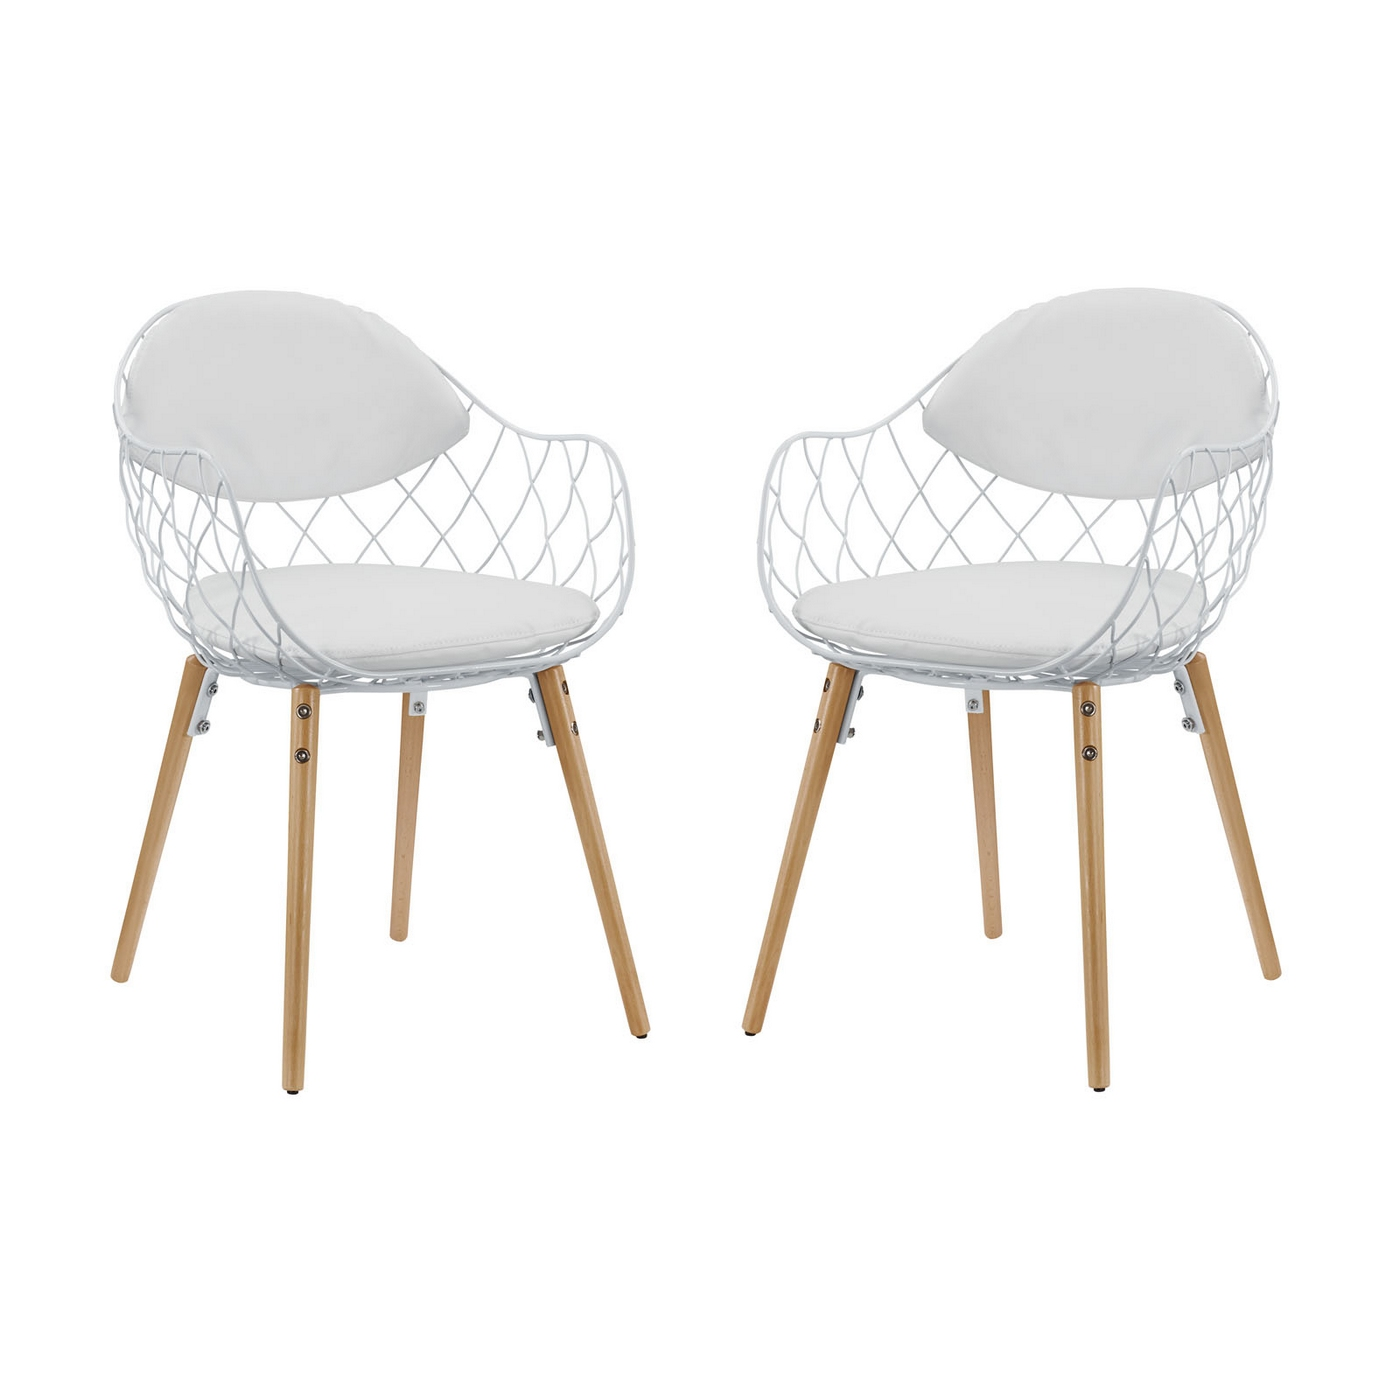 basket weave dining chairs low cost set of 2 modern open wire weaved chair